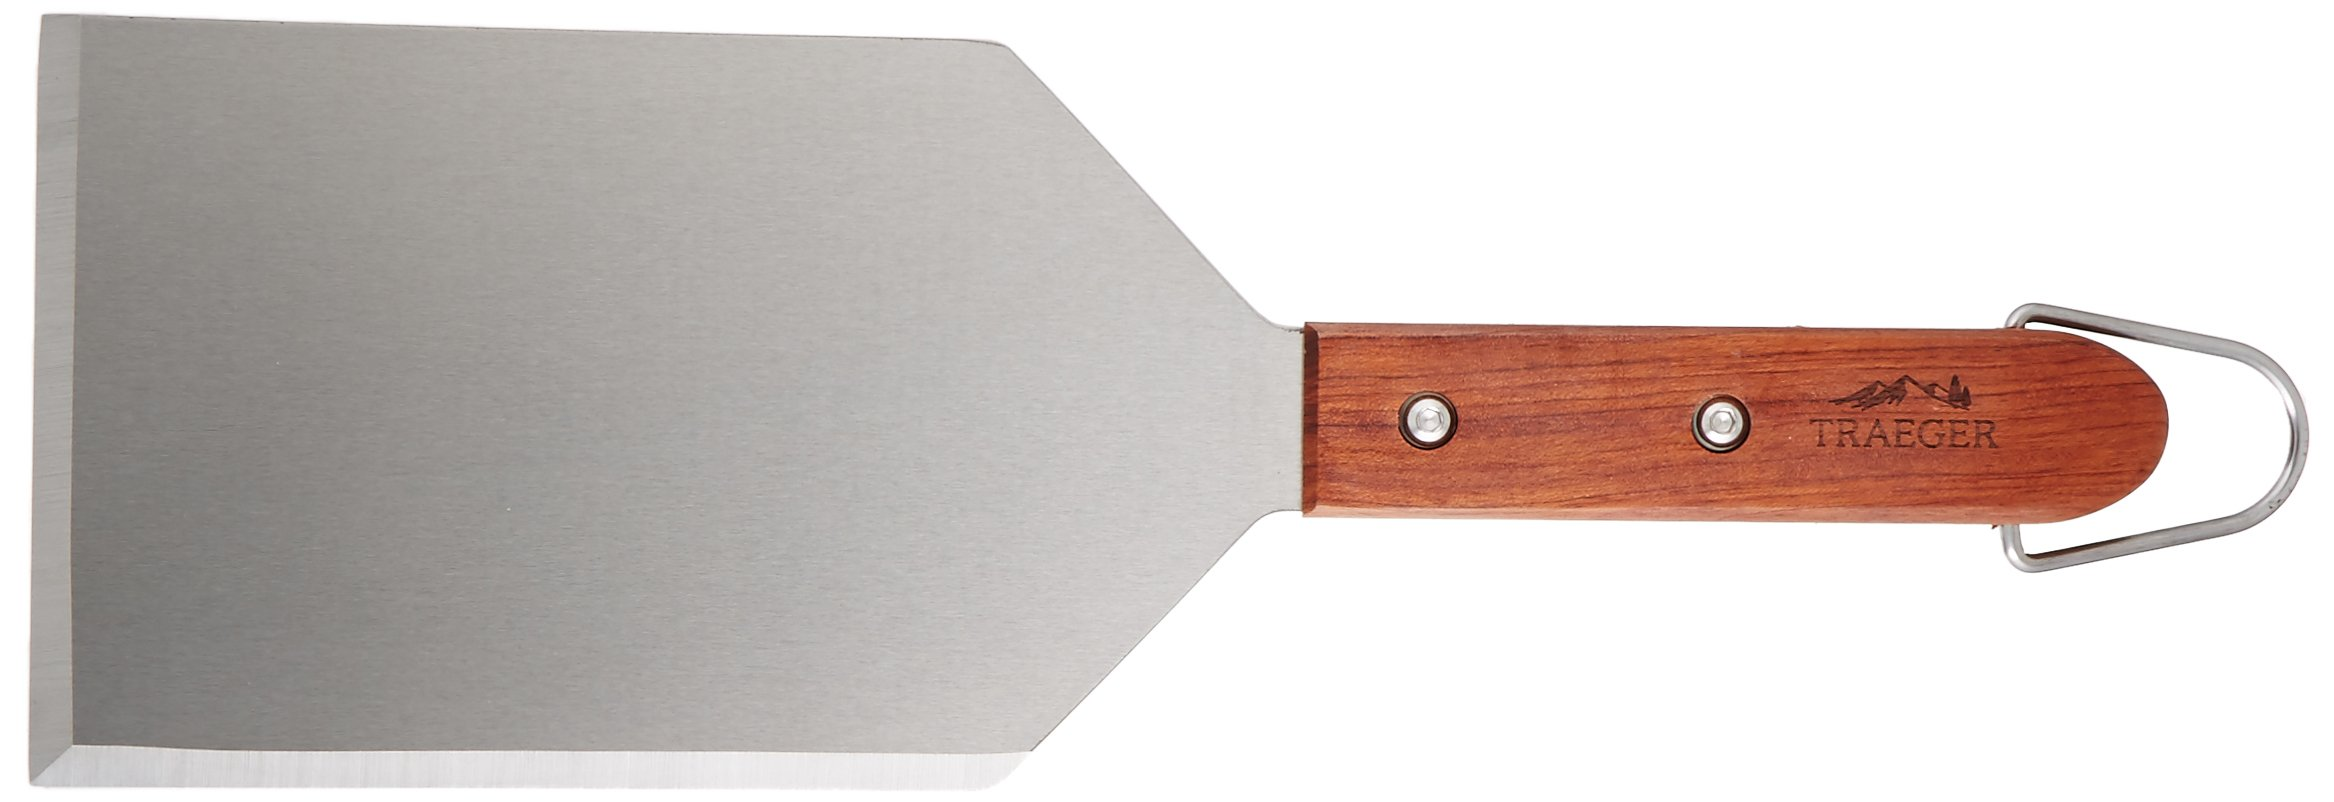 Traeger Grills BAC417 Large Meat Grill Spatula, Brown/A